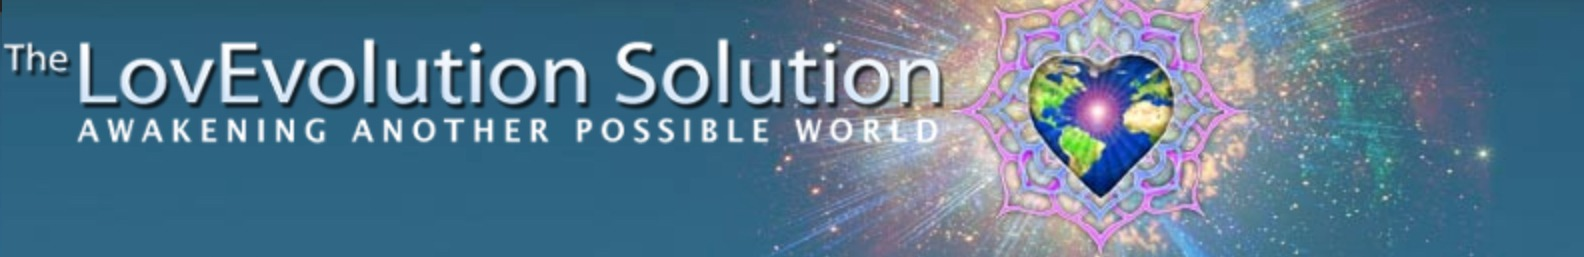 The LovEvolution Solution